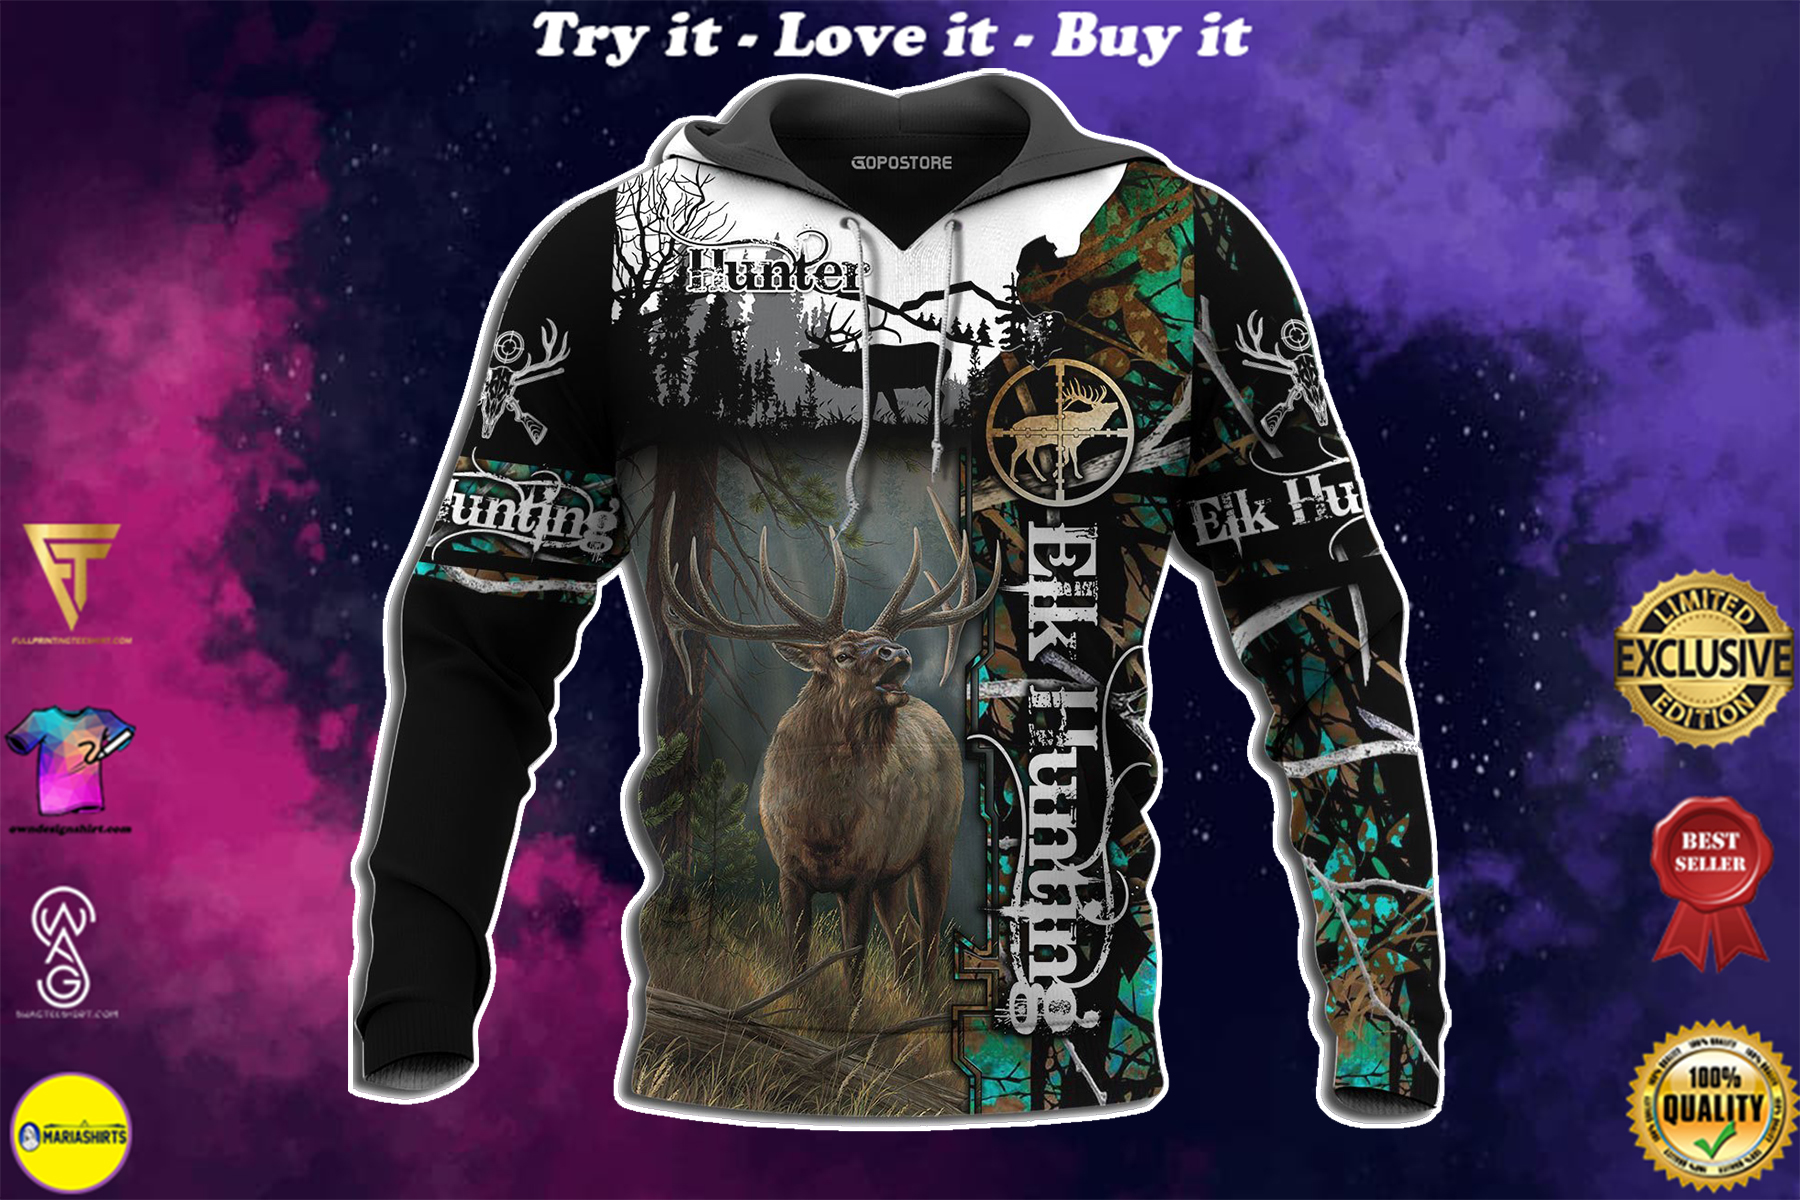 [special edition] elk hunting love hunter full over printed shirt - maria